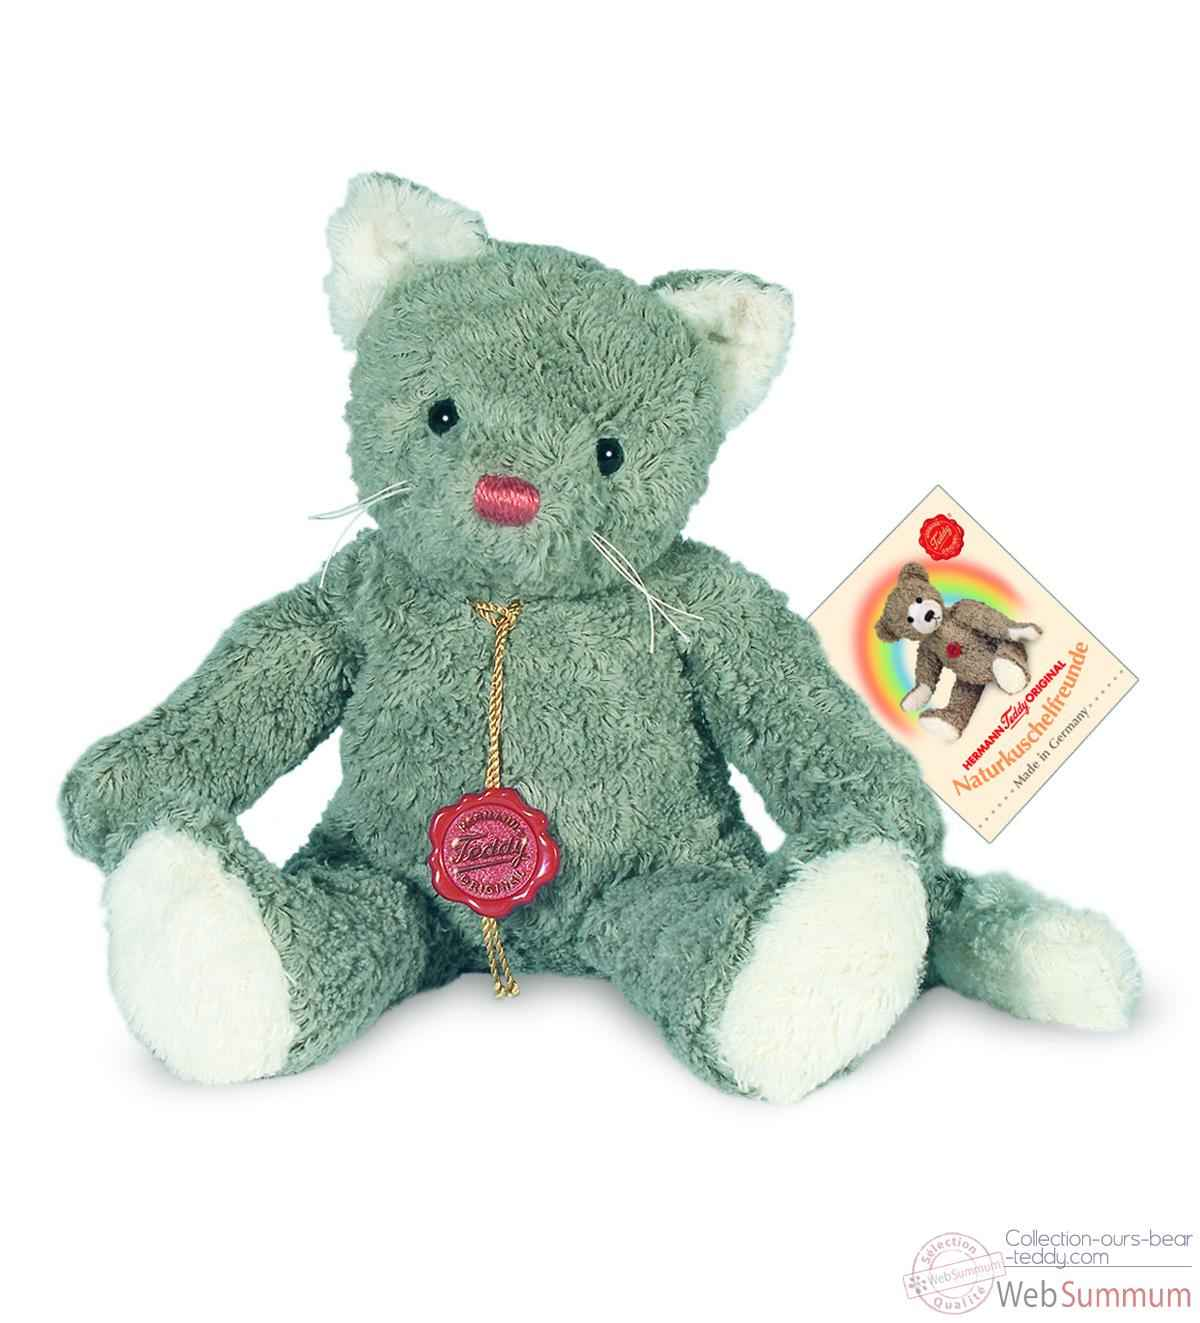 Les  Nounours  Peluche-collection-hermann-teddy-ours-10805